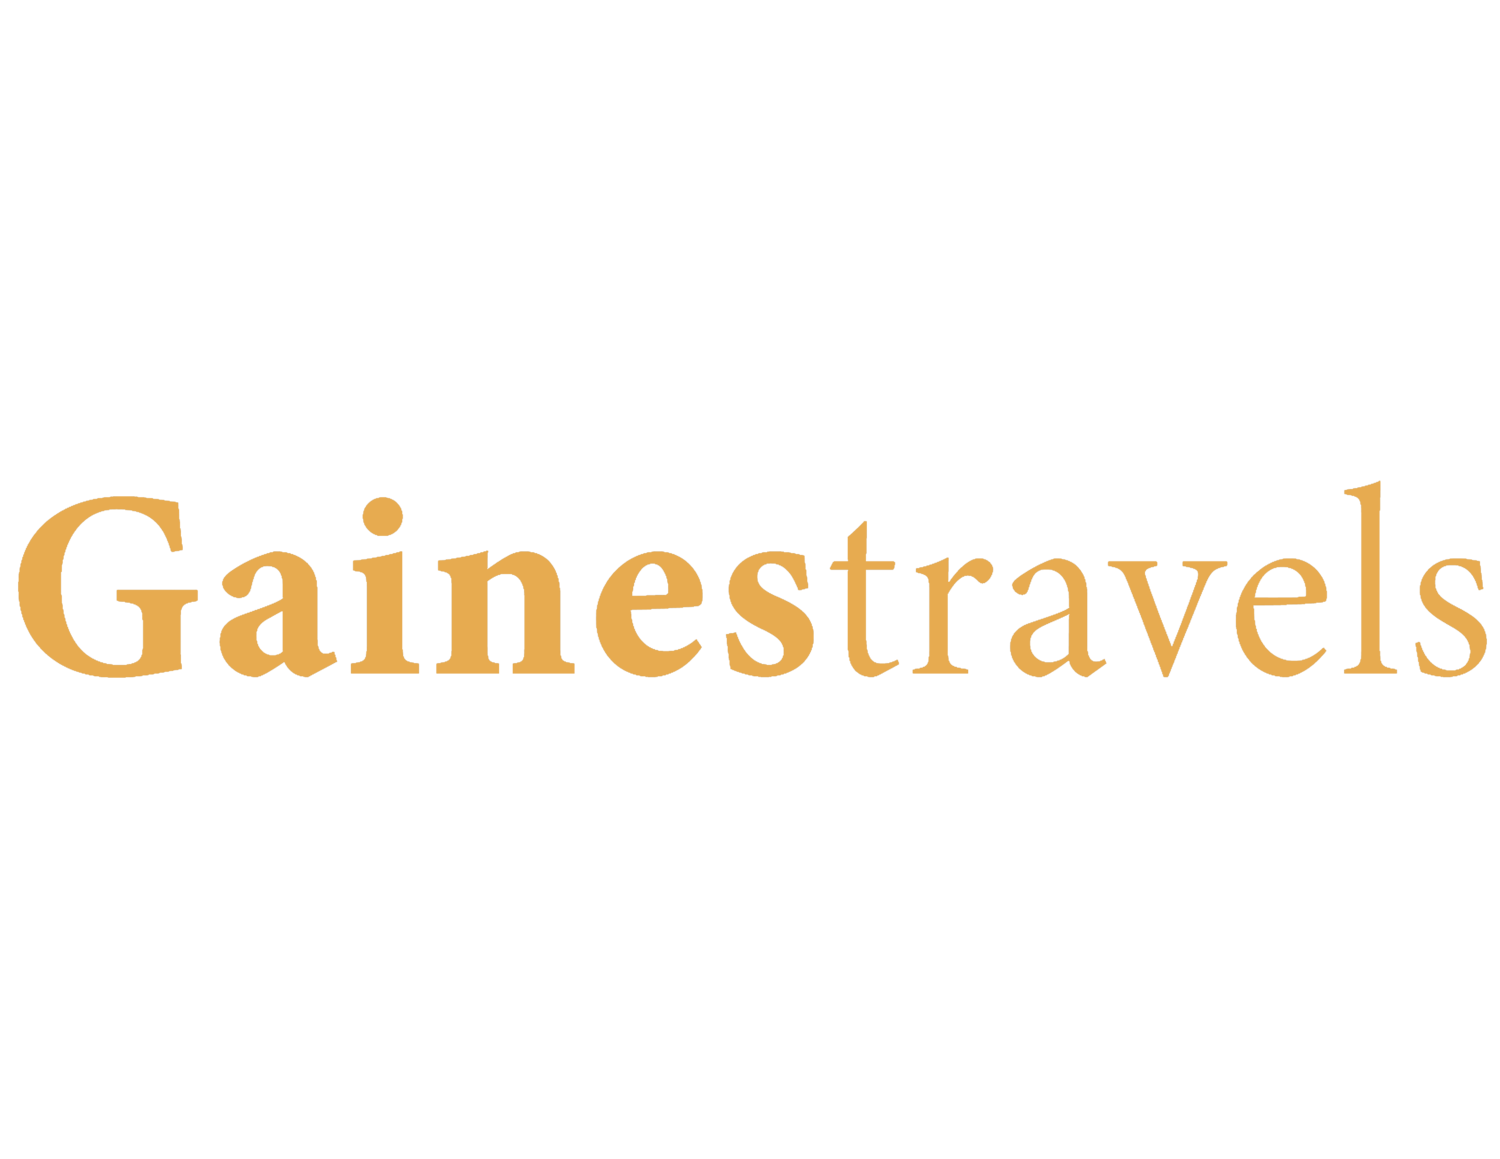 GAINESTRAVELS